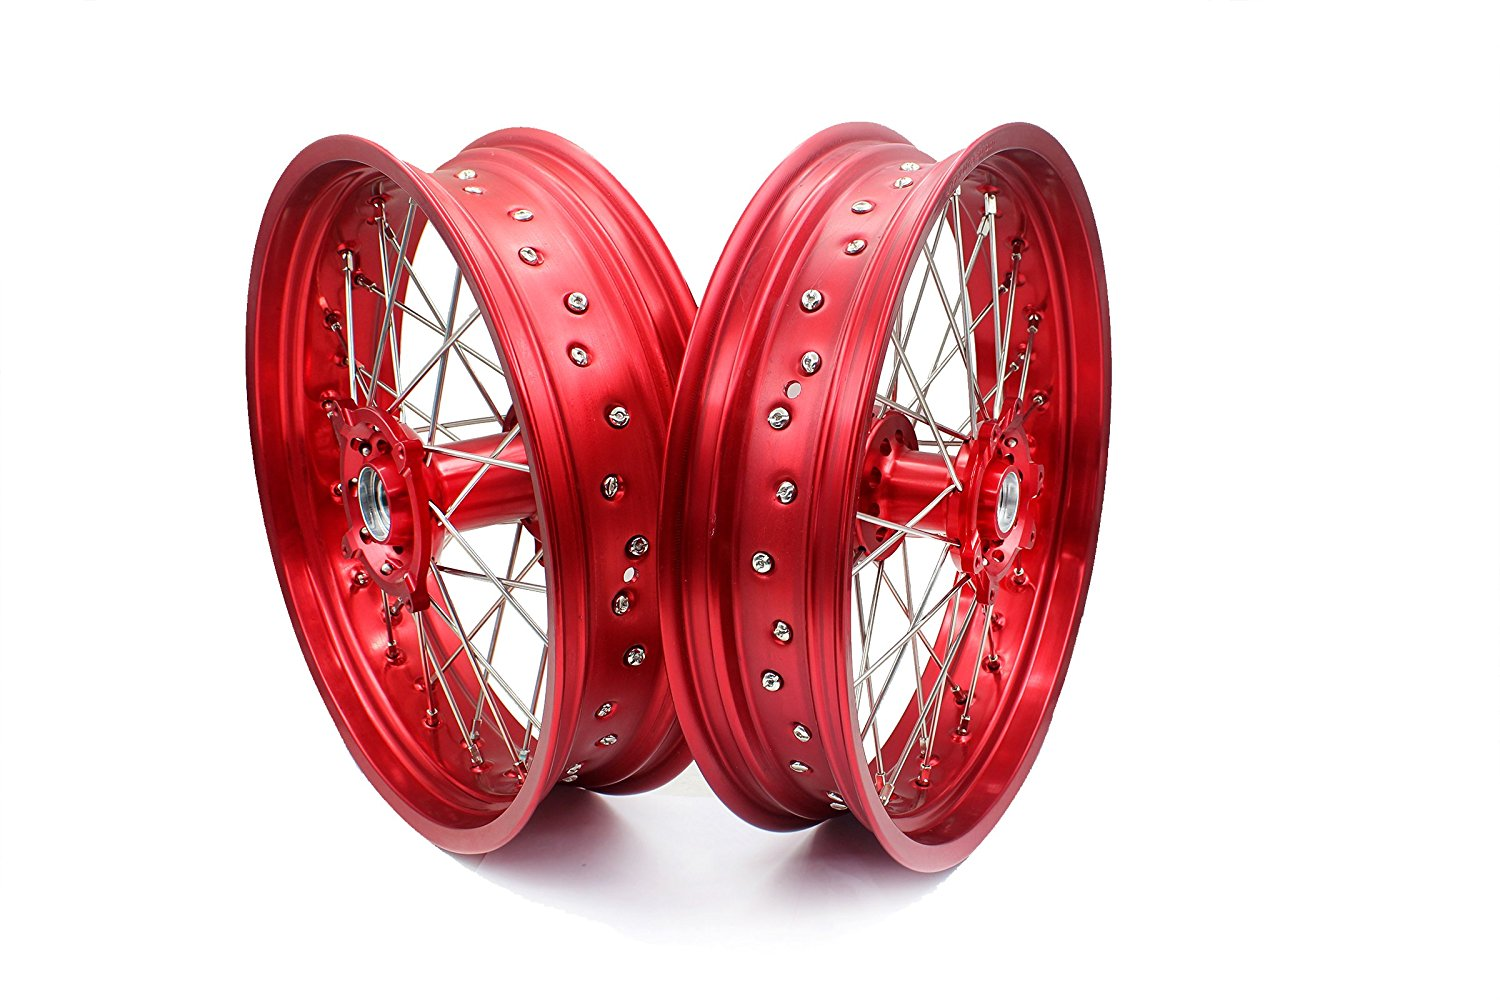 Cheap Honda Crf 450 Wheels, find Honda Crf 450 Wheels deals